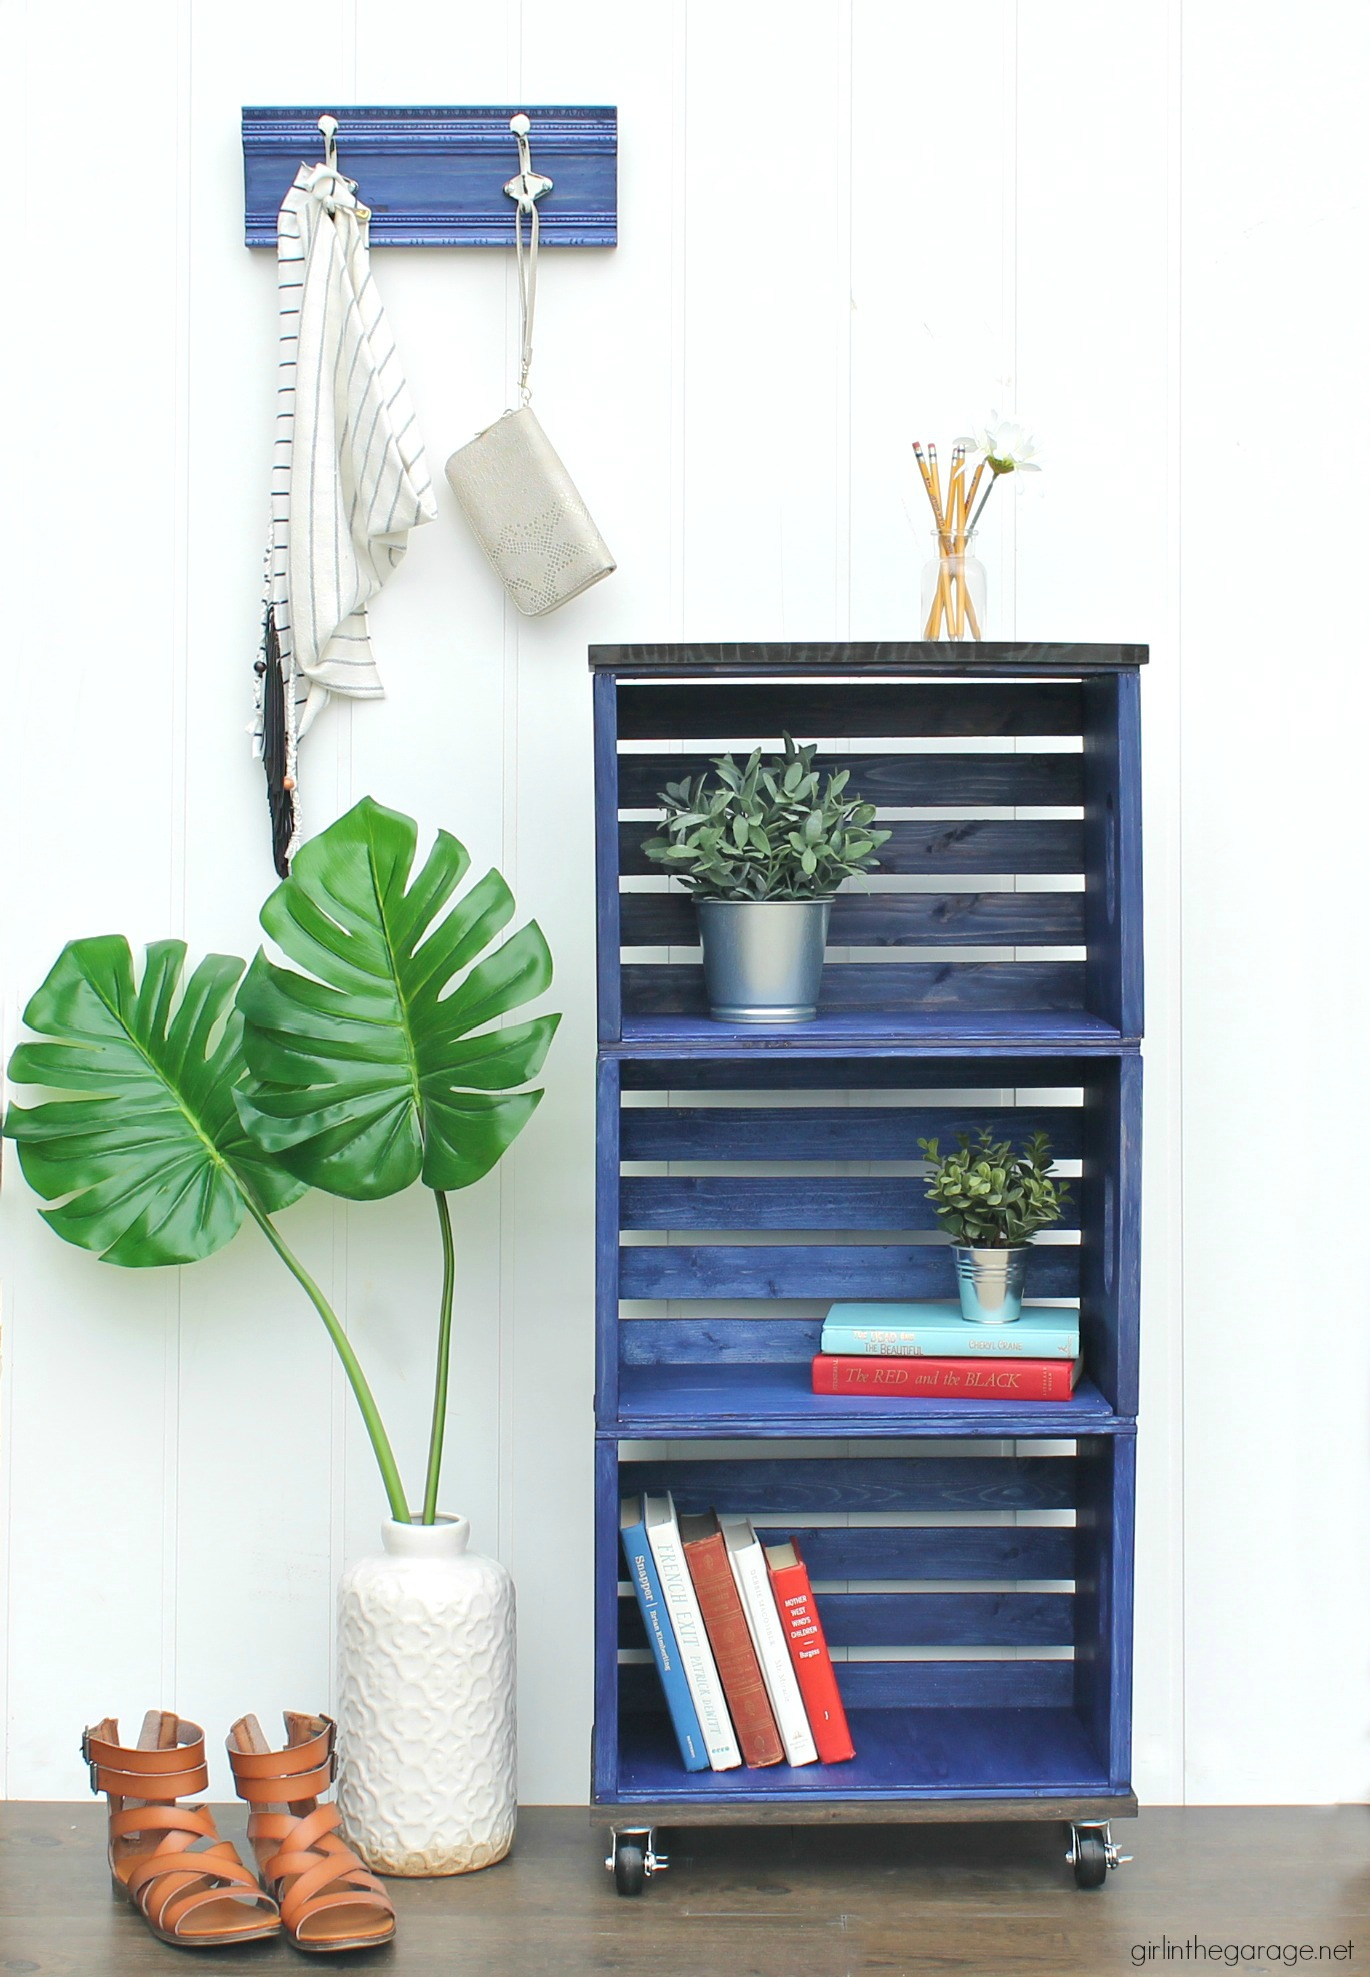 How to Build and Stain a Wooden Crate Bookshelf - Girl in the Garage